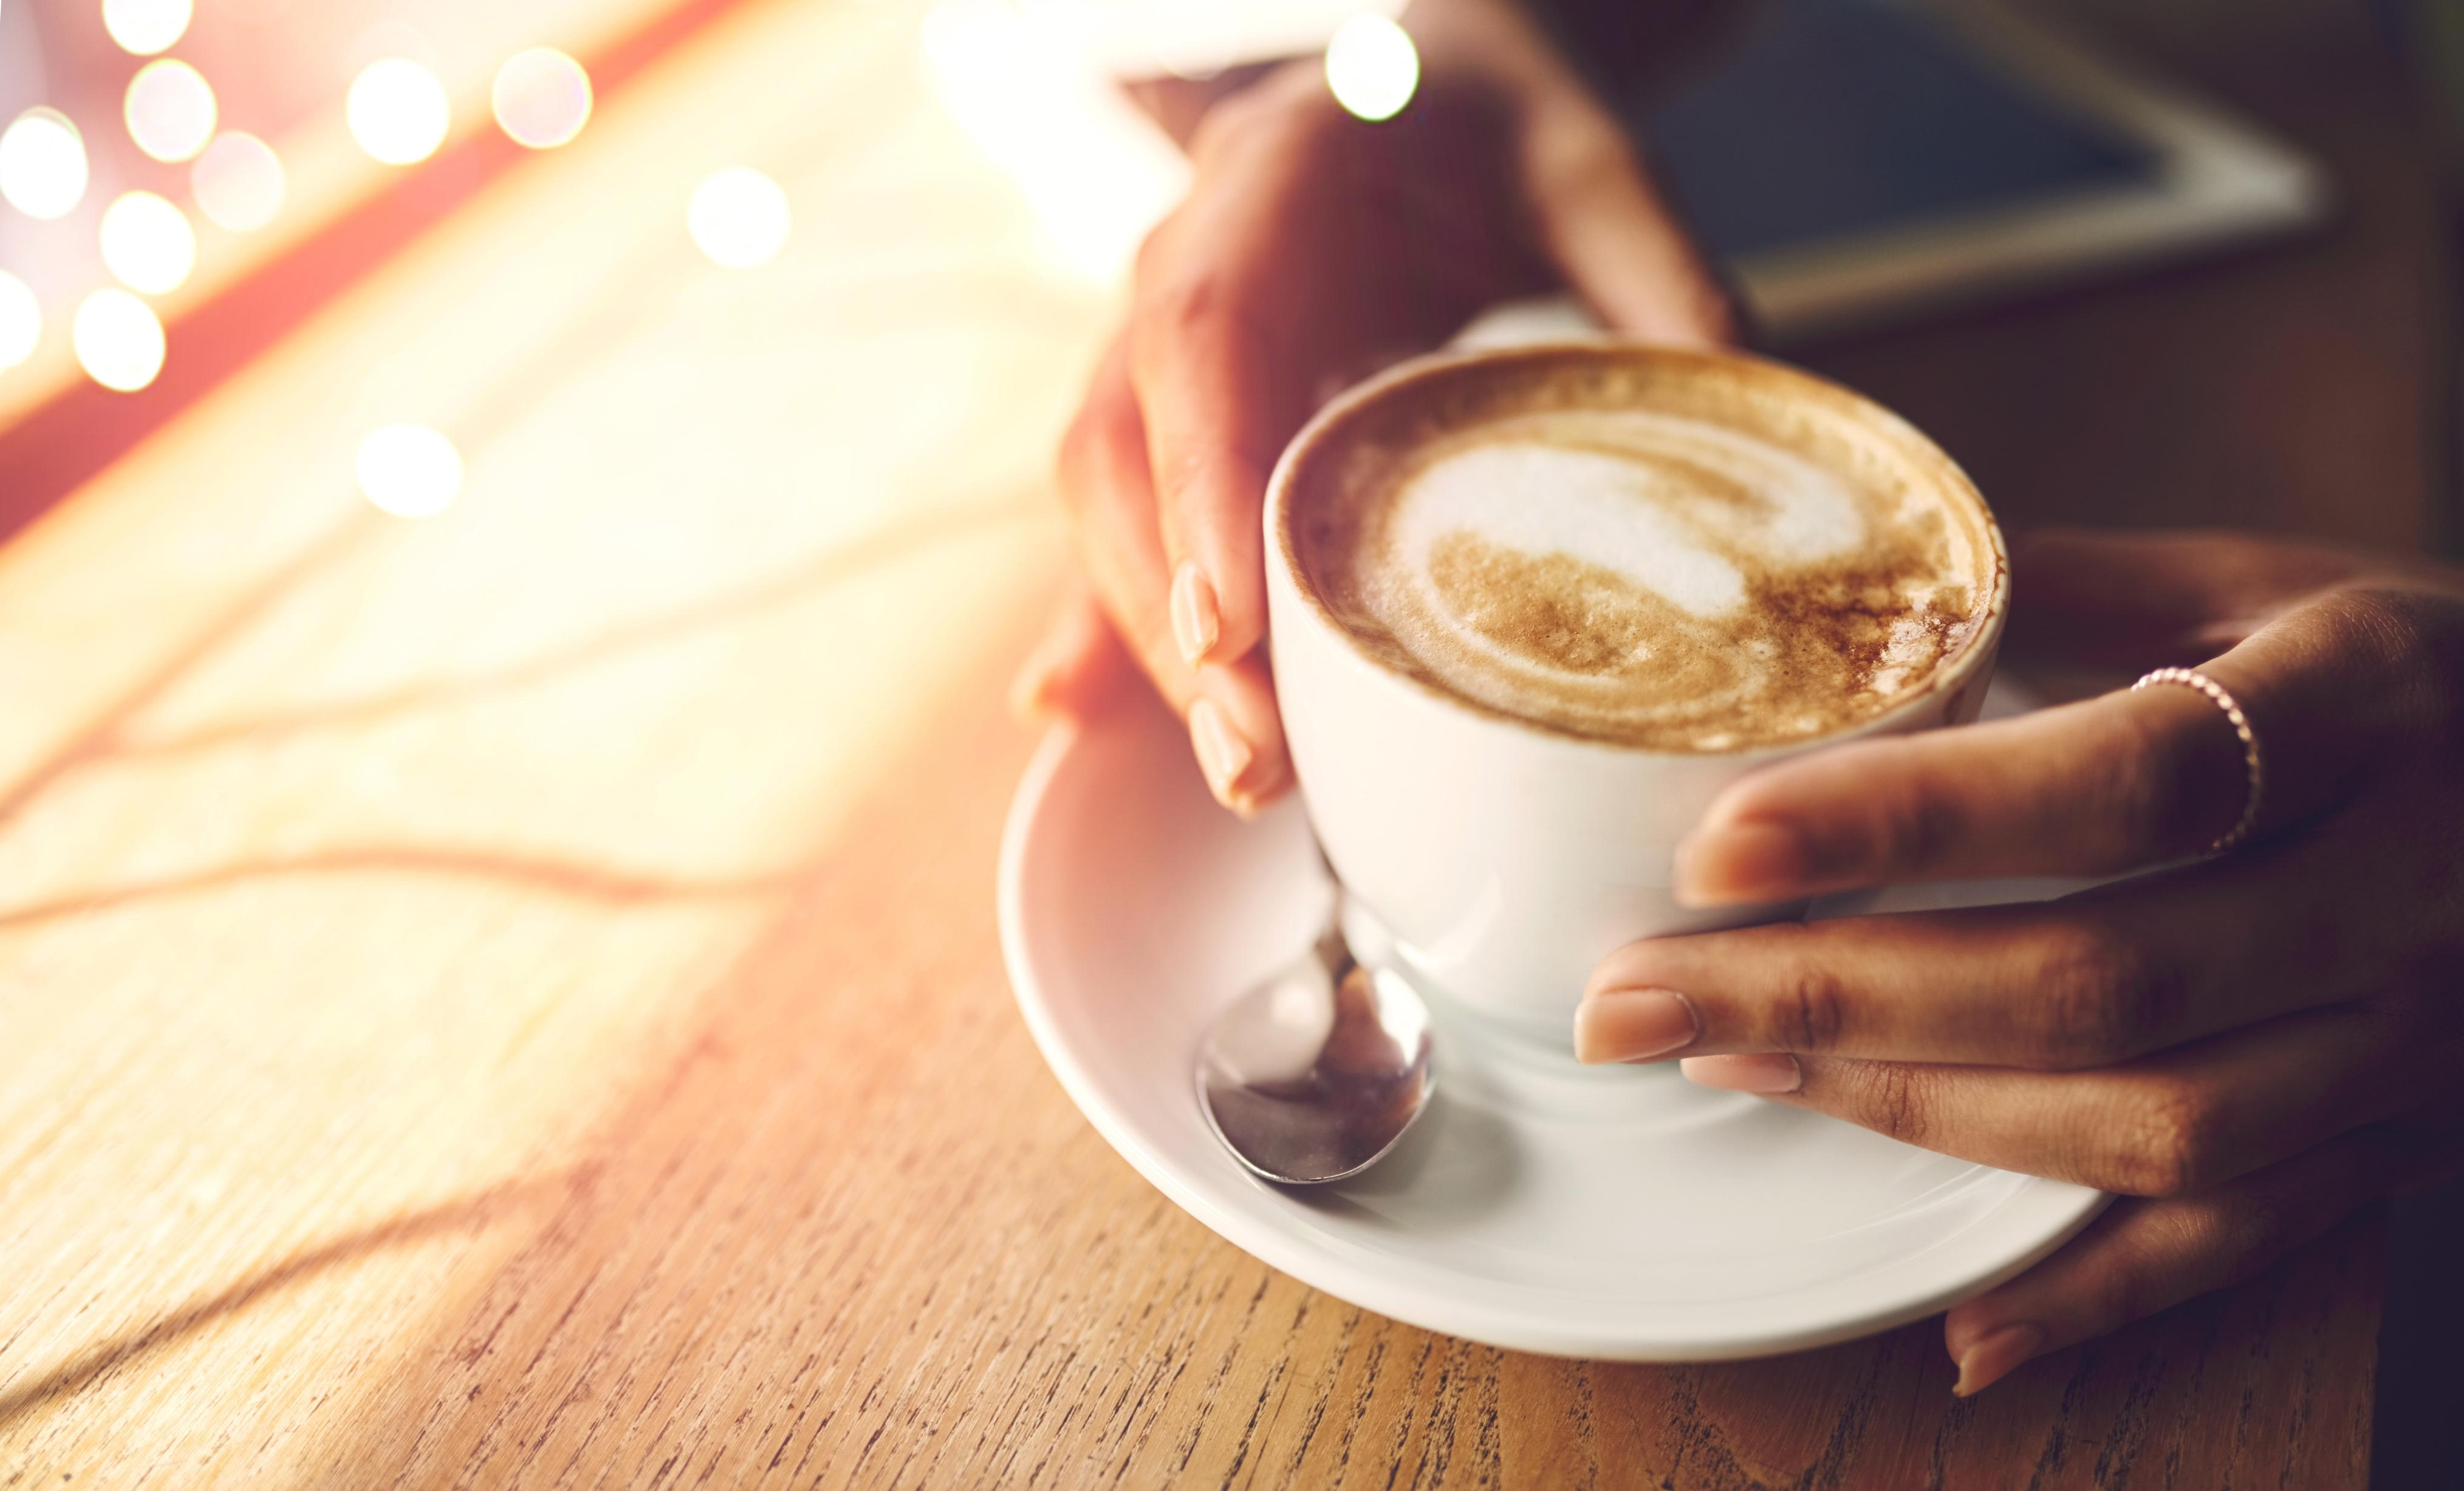 Can drinking coffee actually reduce dementia risk?